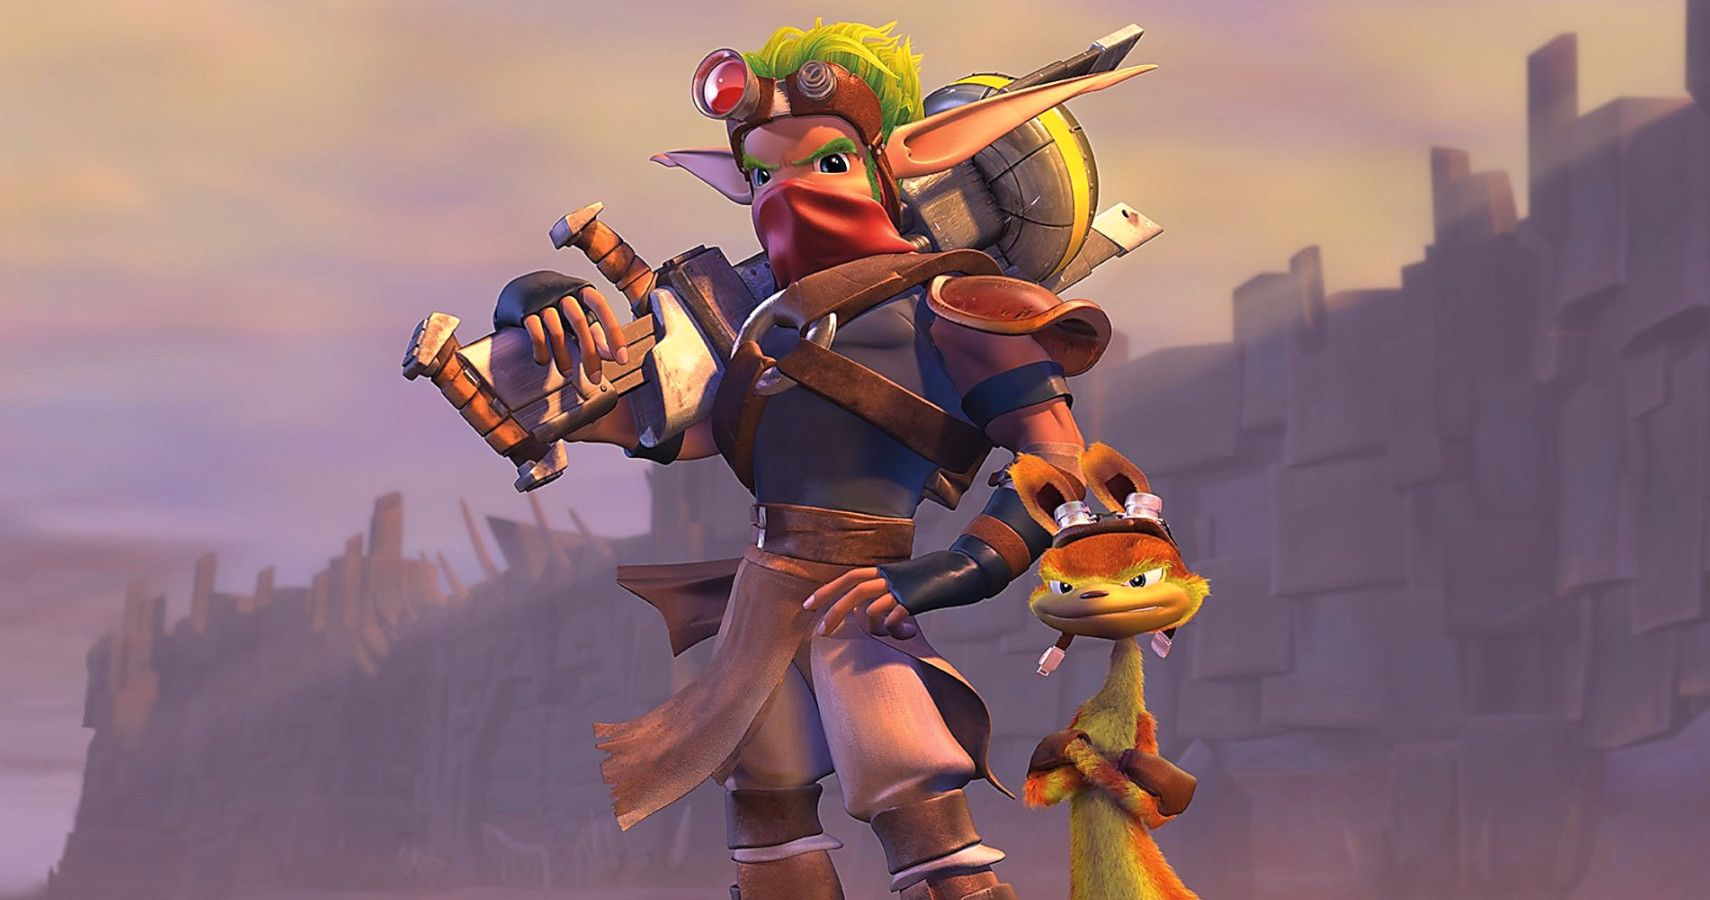 The New Ratchet & Clank Is Making Me Nostalgic For Jak And Daxter